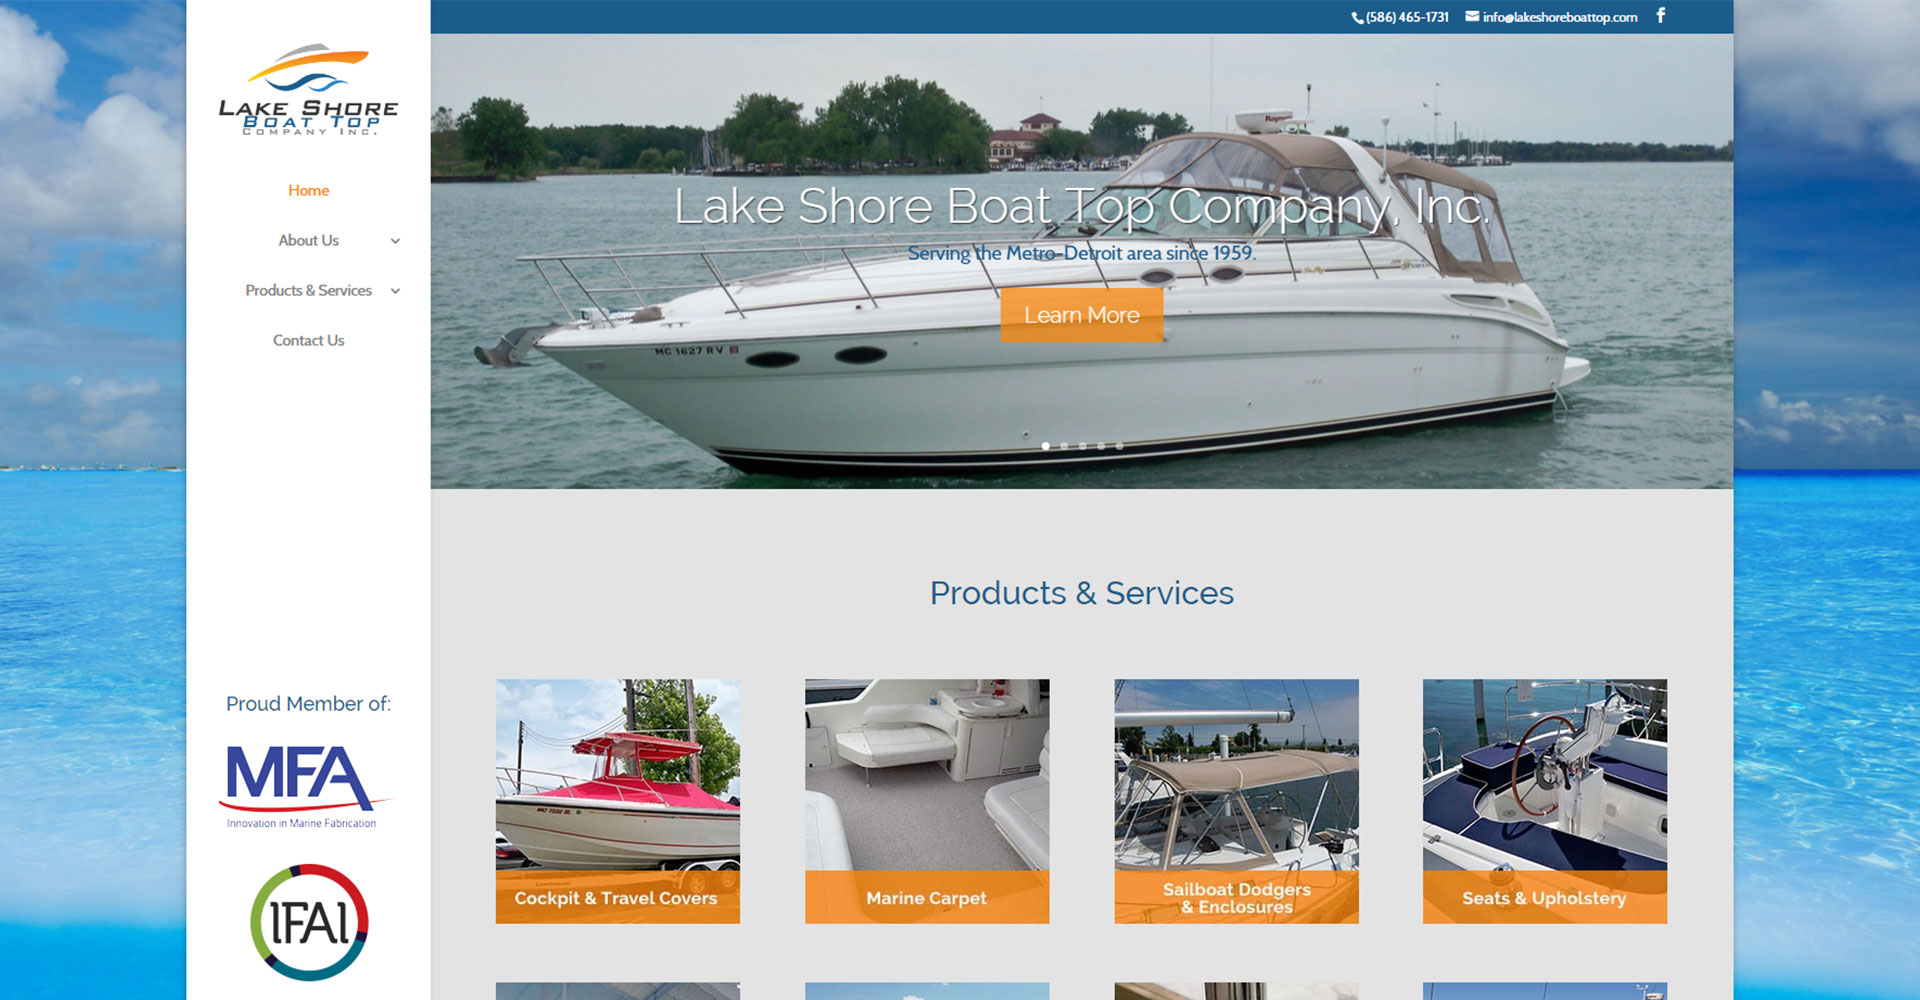 Lake Shore Boat Top - Zoda Design